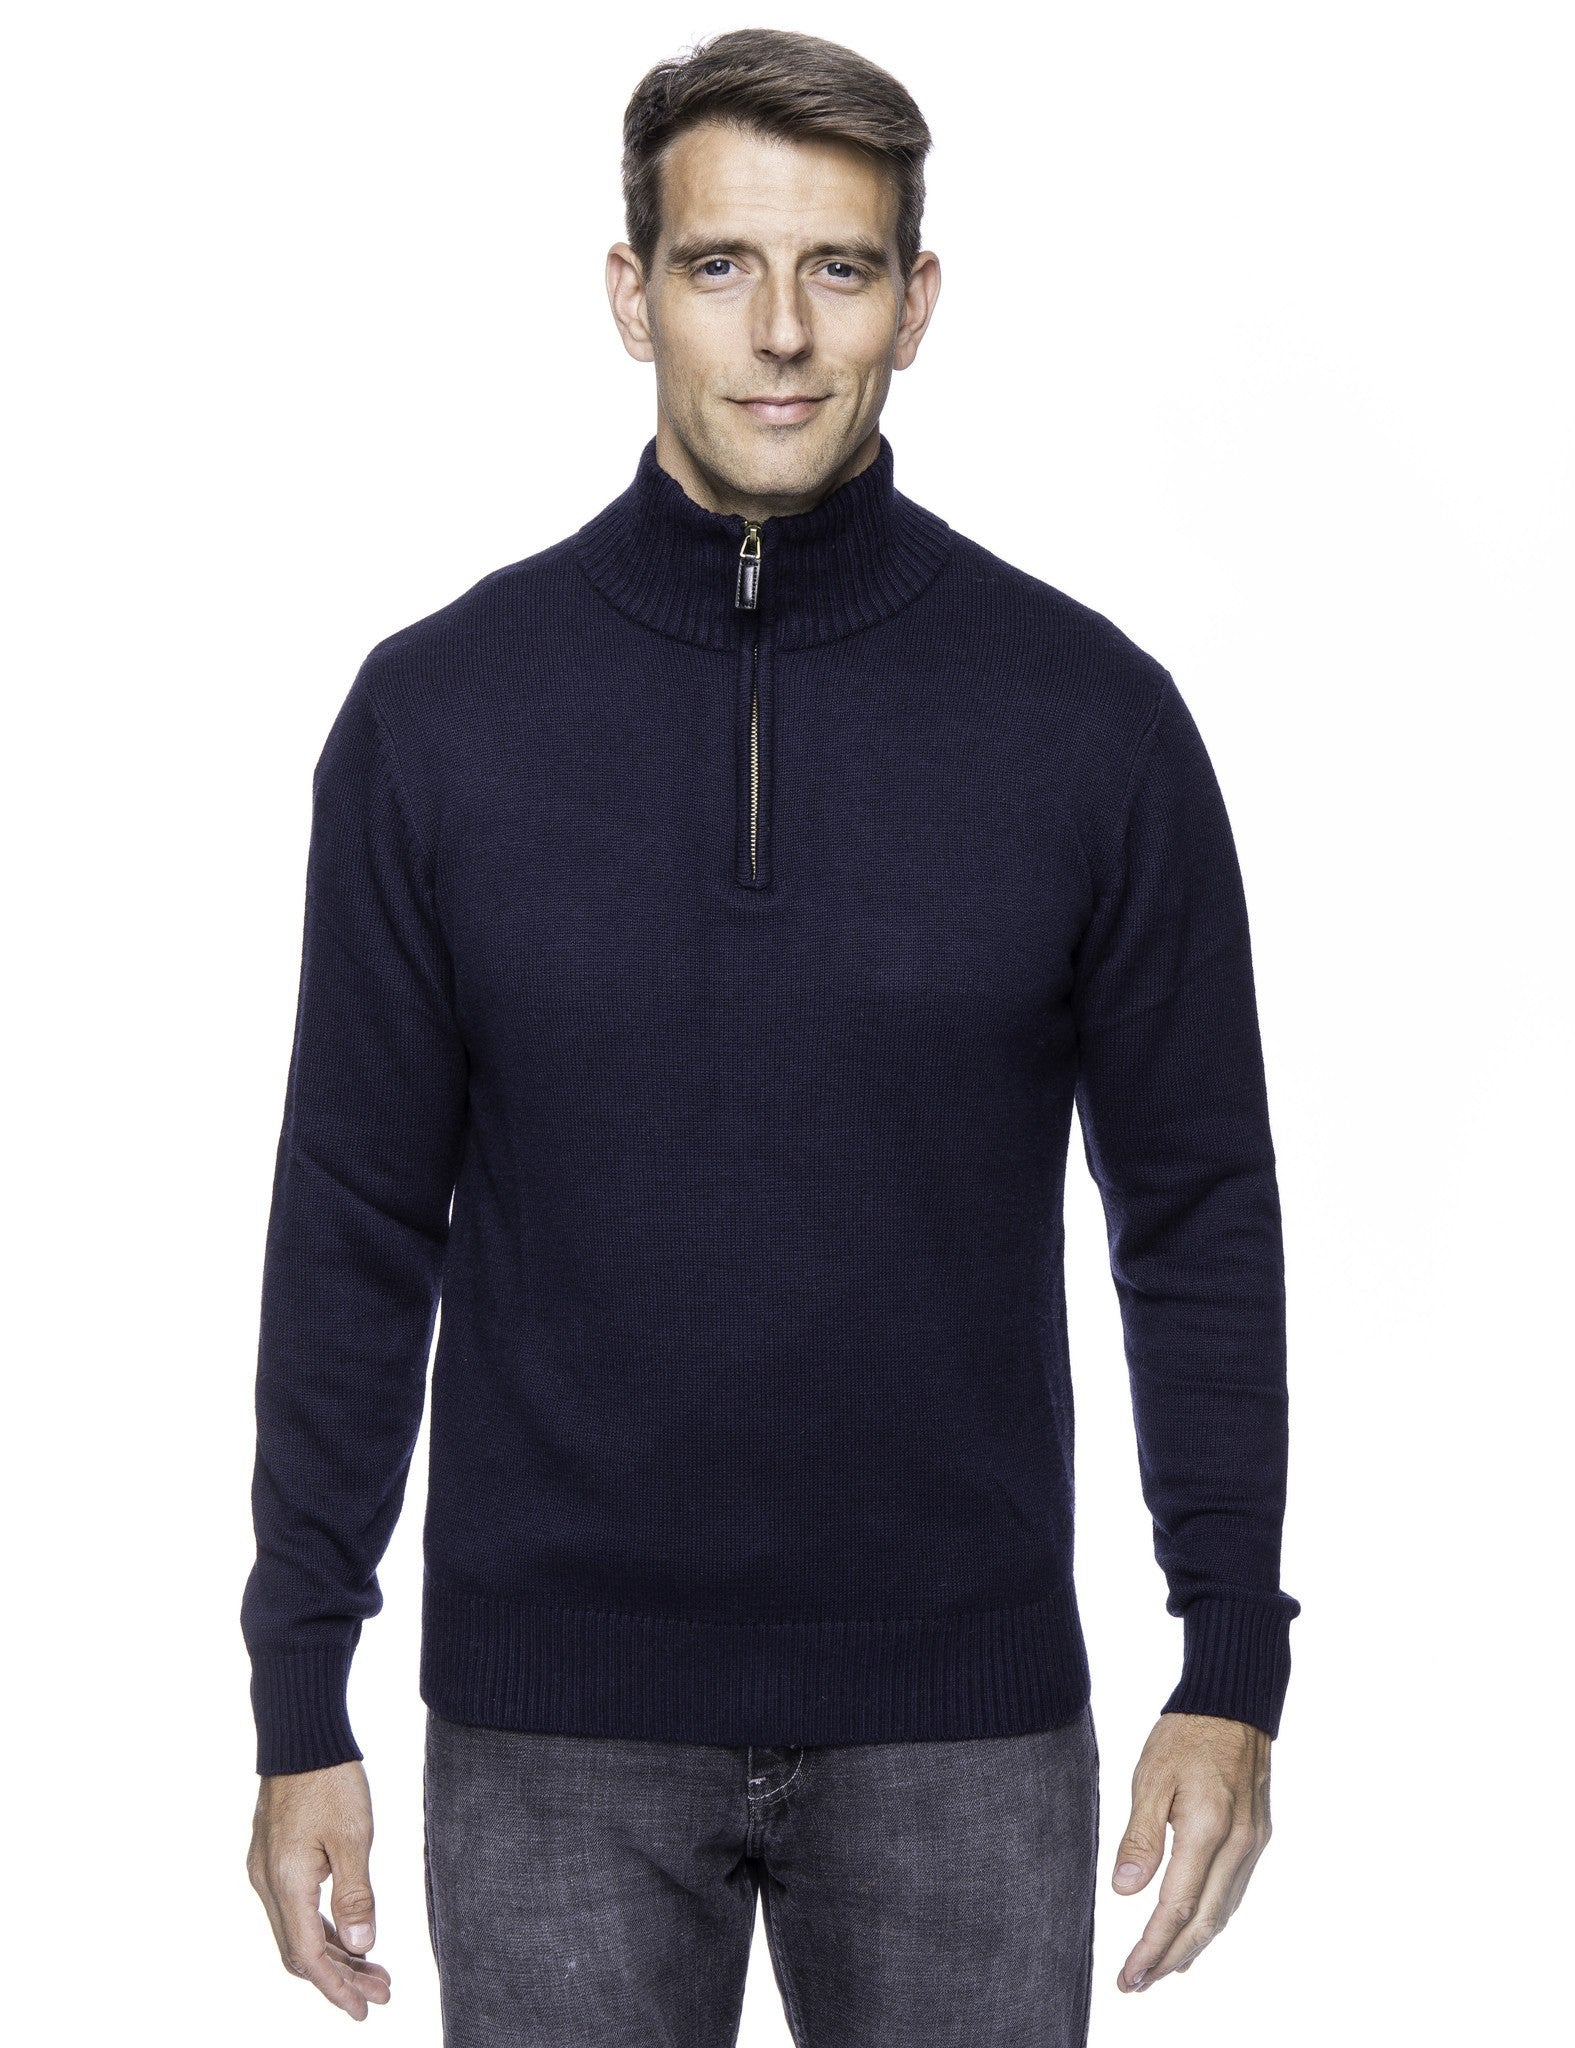 Cashmere Blend Half Zip Pullover Sweater - Navy